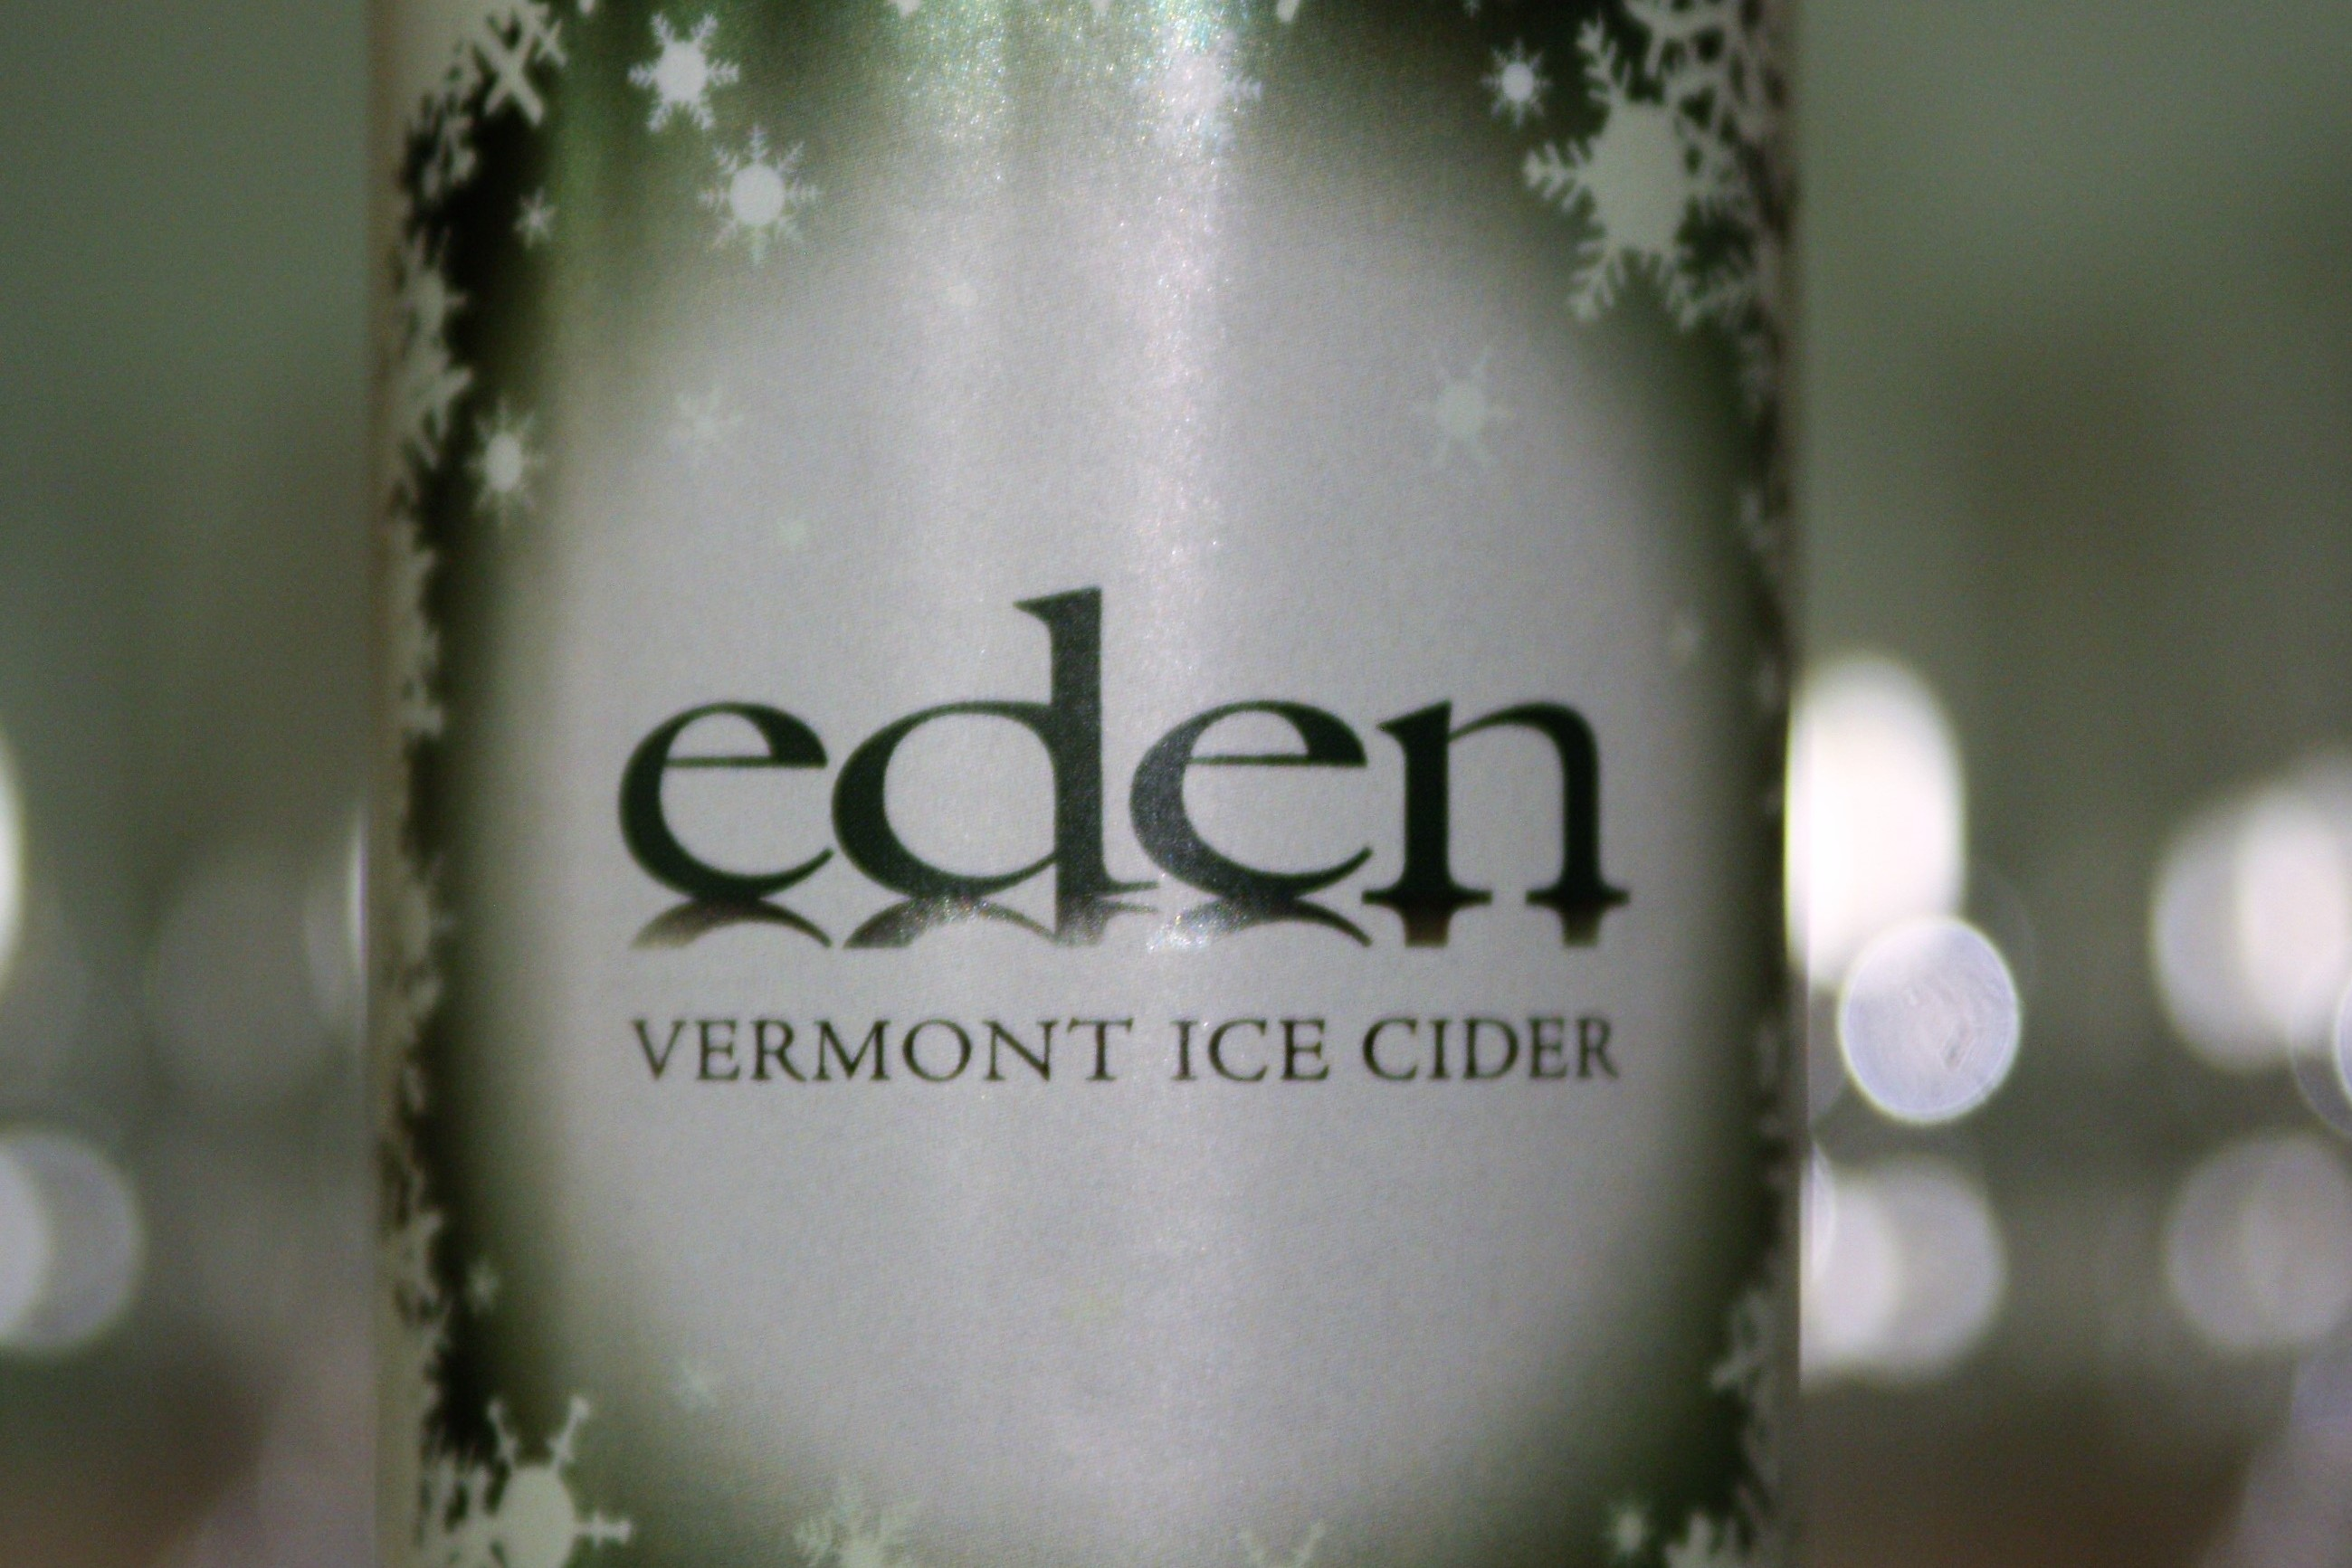 Eden Vermont Ice Cider: Heirloom Blend (NV)